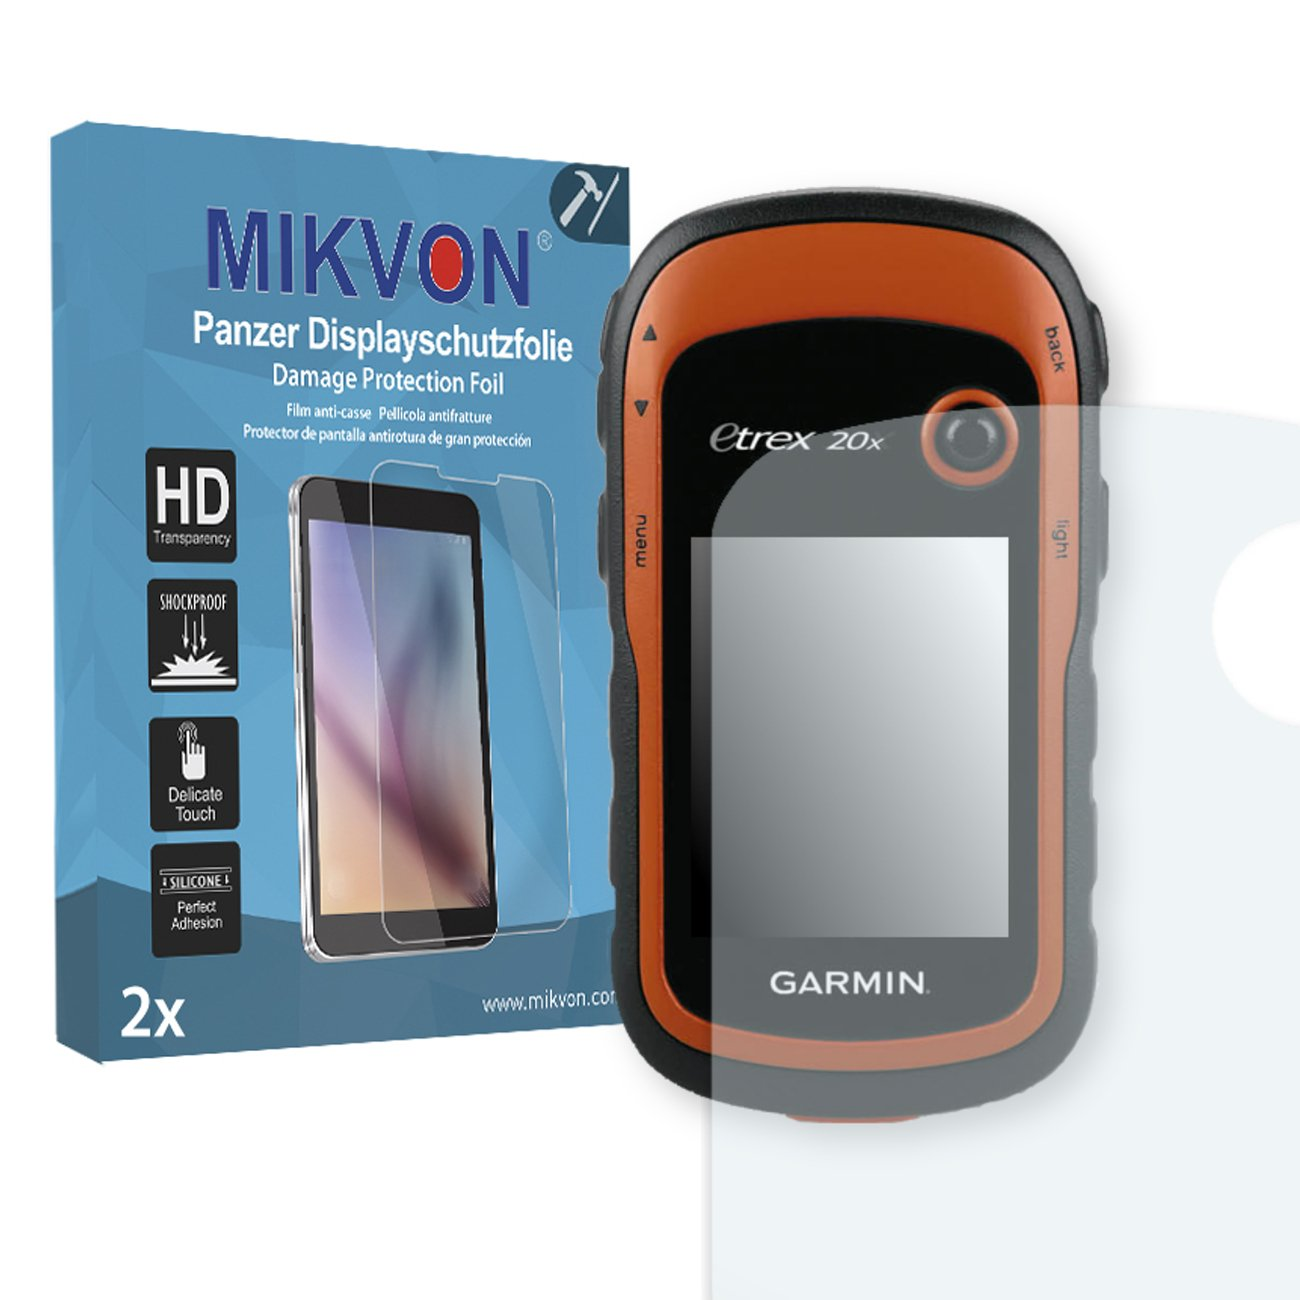 2X Mikvon Armor Screen Protector for Garmin eTrex 20x Screen Fracture Protection Film - Retail Package with Accessories MP296731